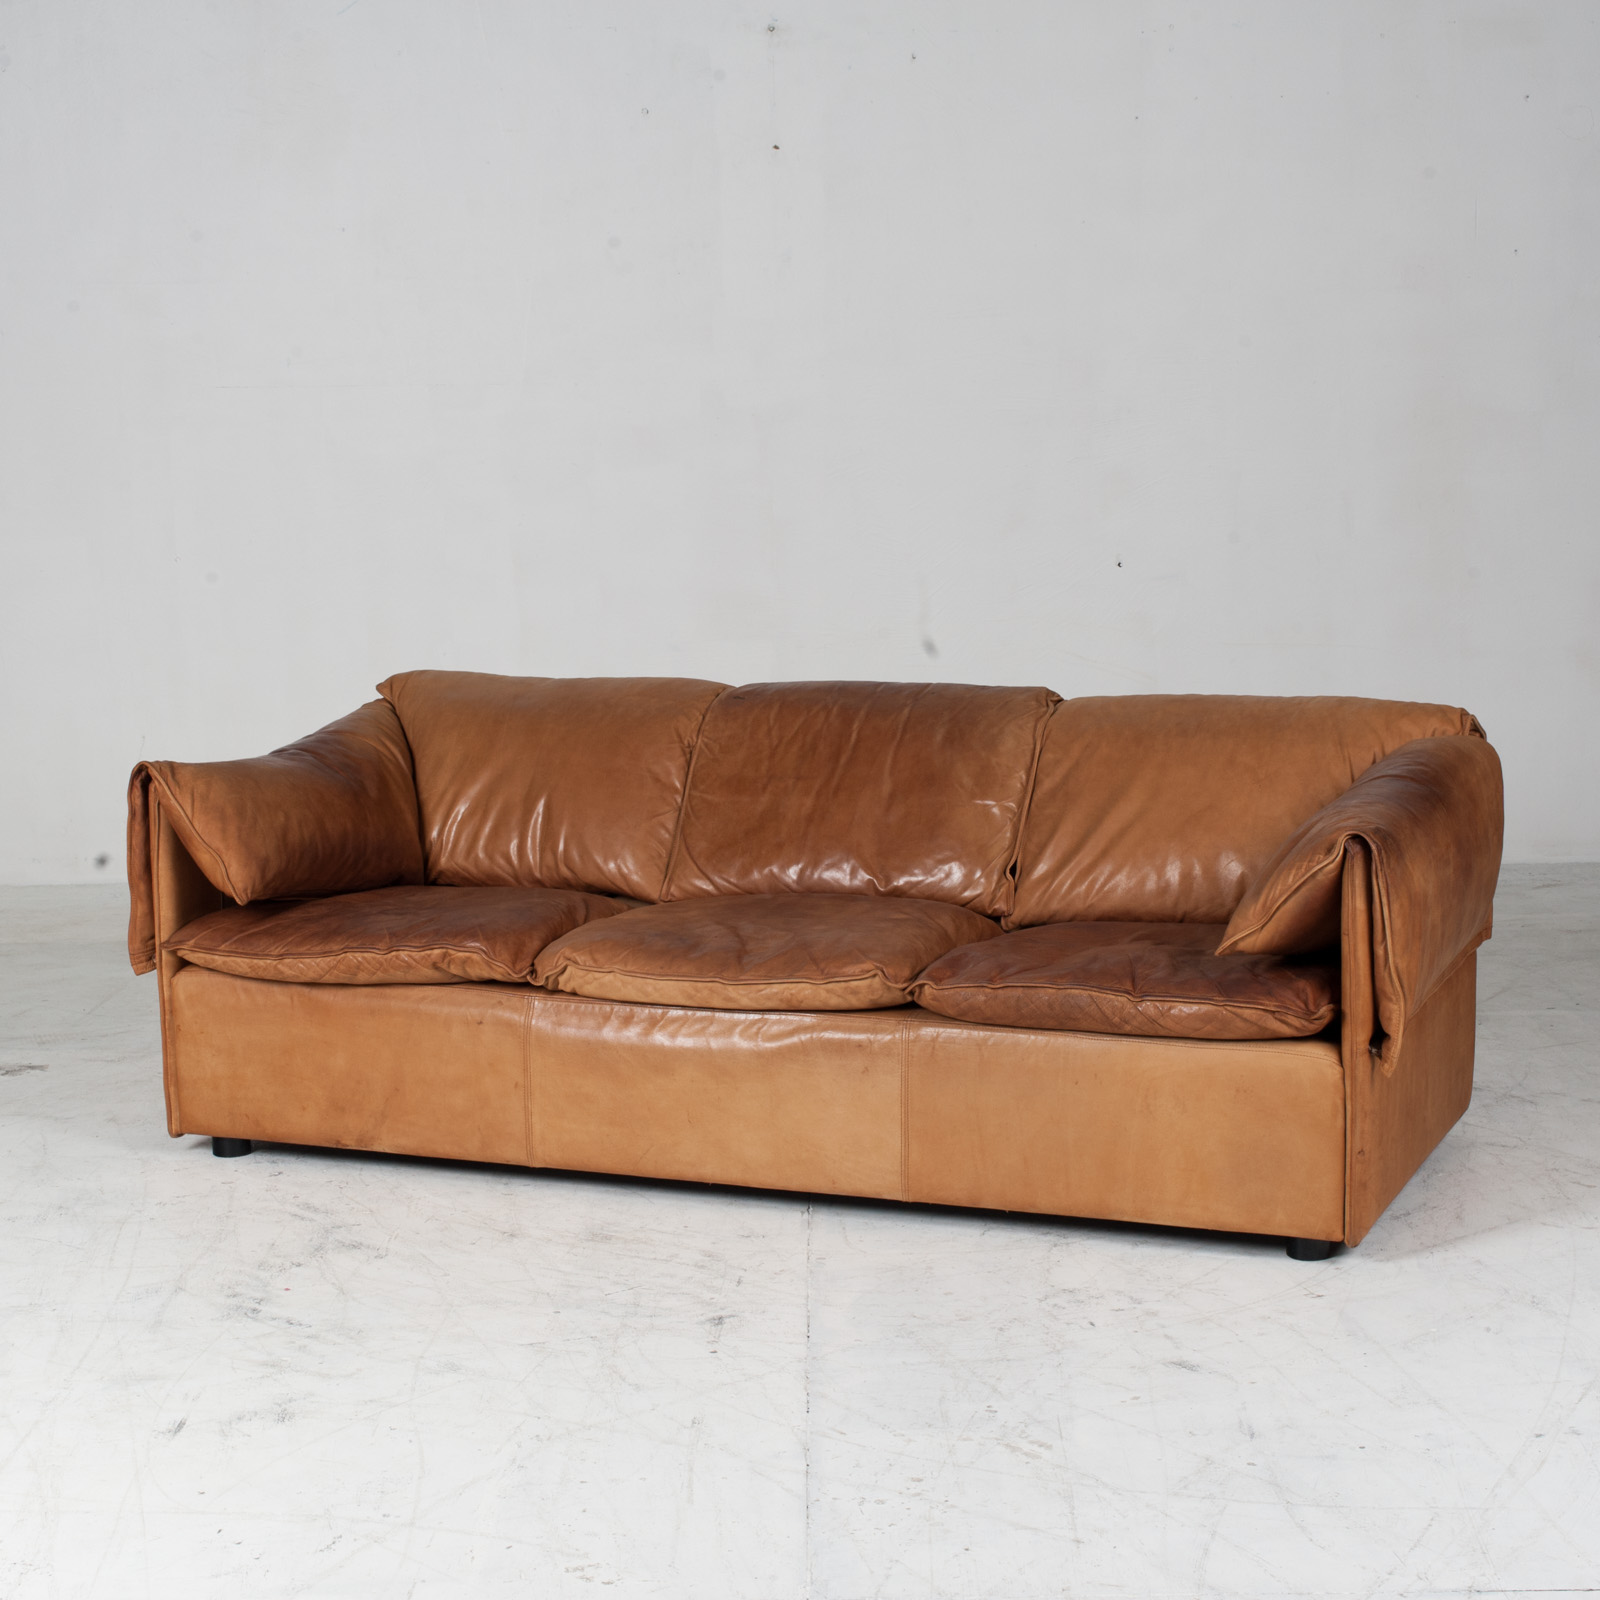 Model Lotus 3 Seat Sofa By Eilersen In Tan Leather 1970s Denmark 04